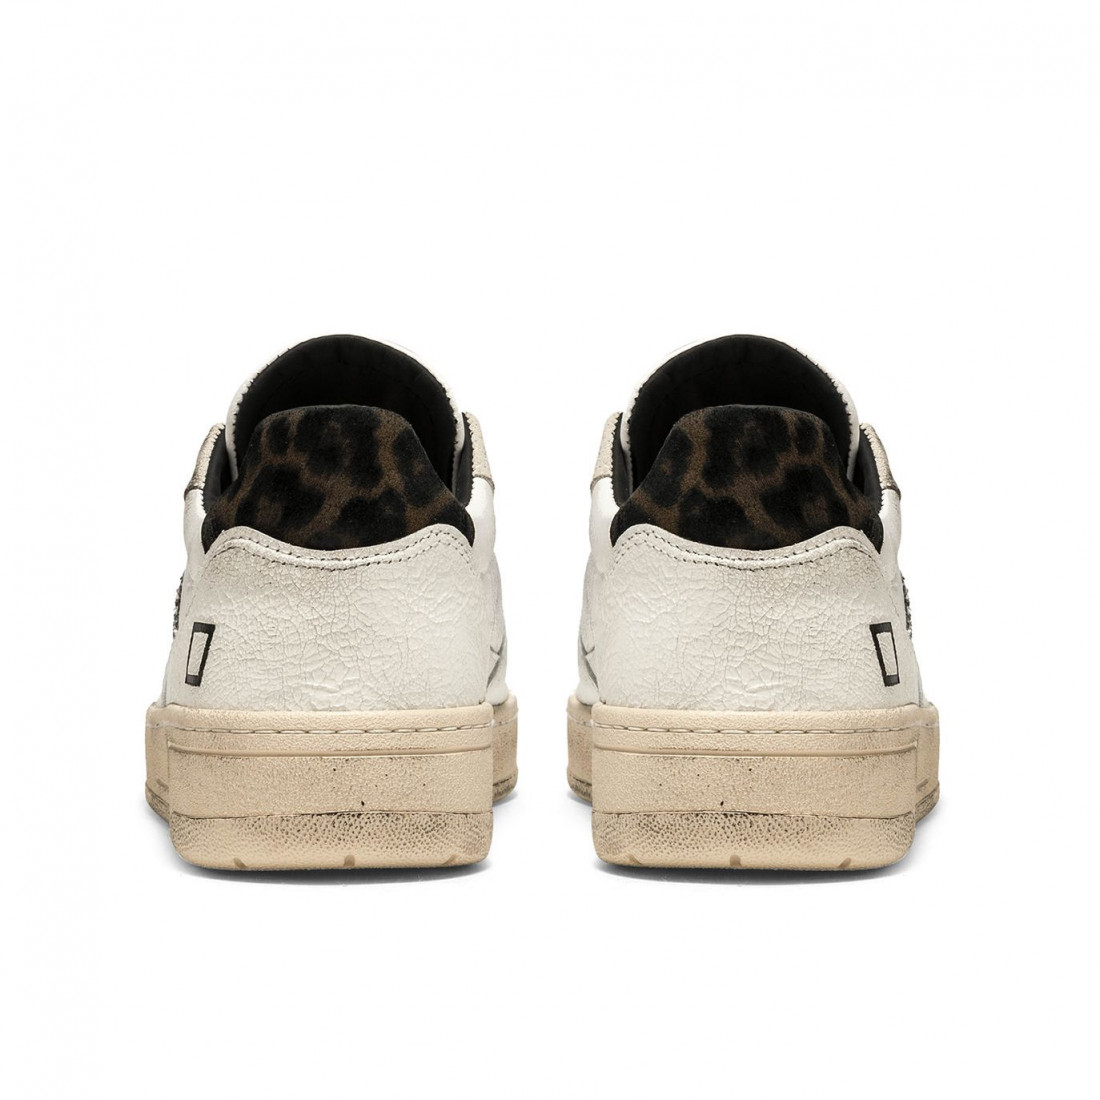 sneakers woman date court w351 c2 po wd 9076